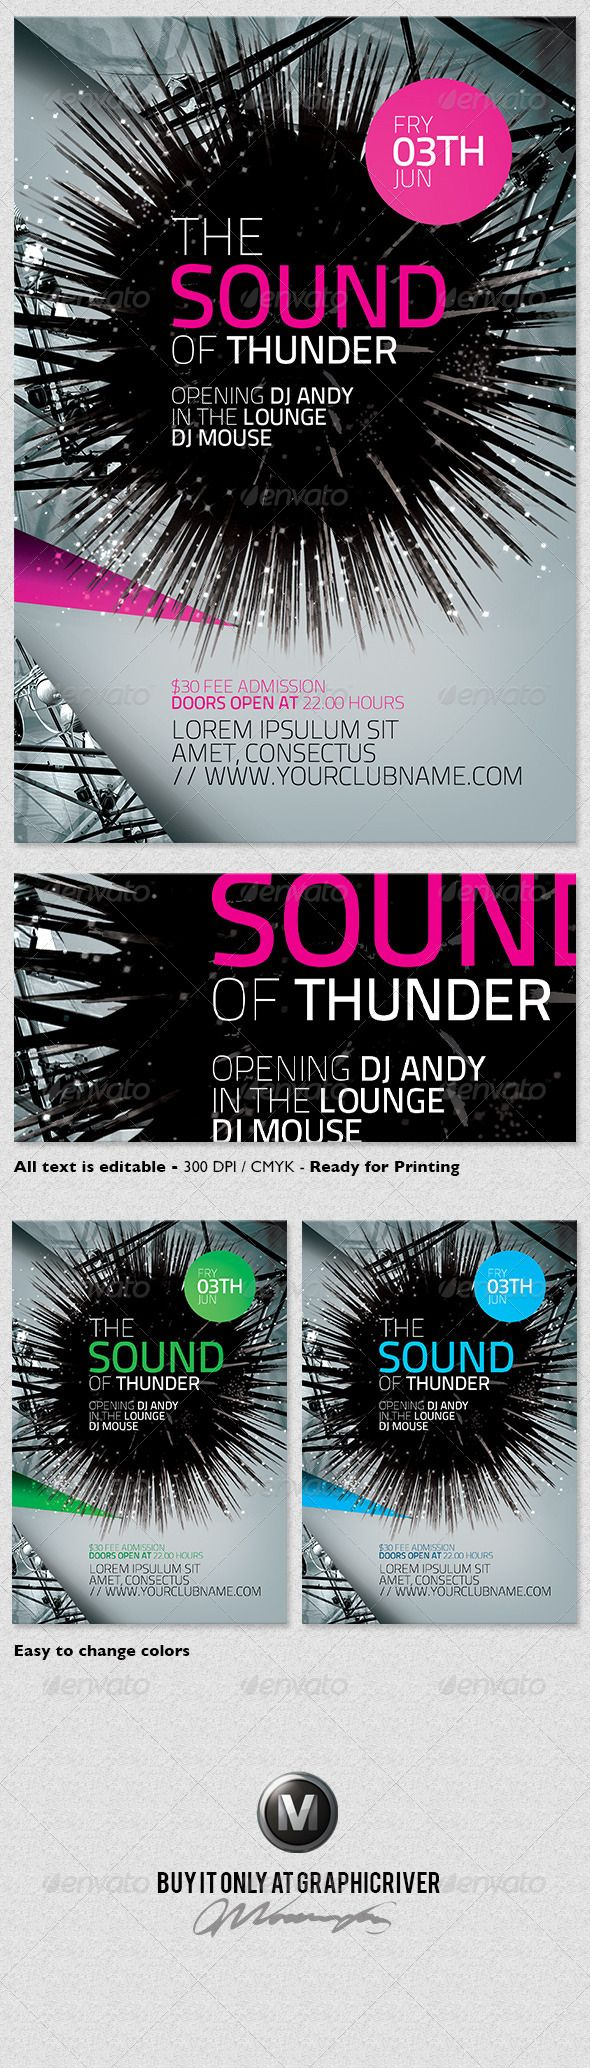 opening soon flyer template